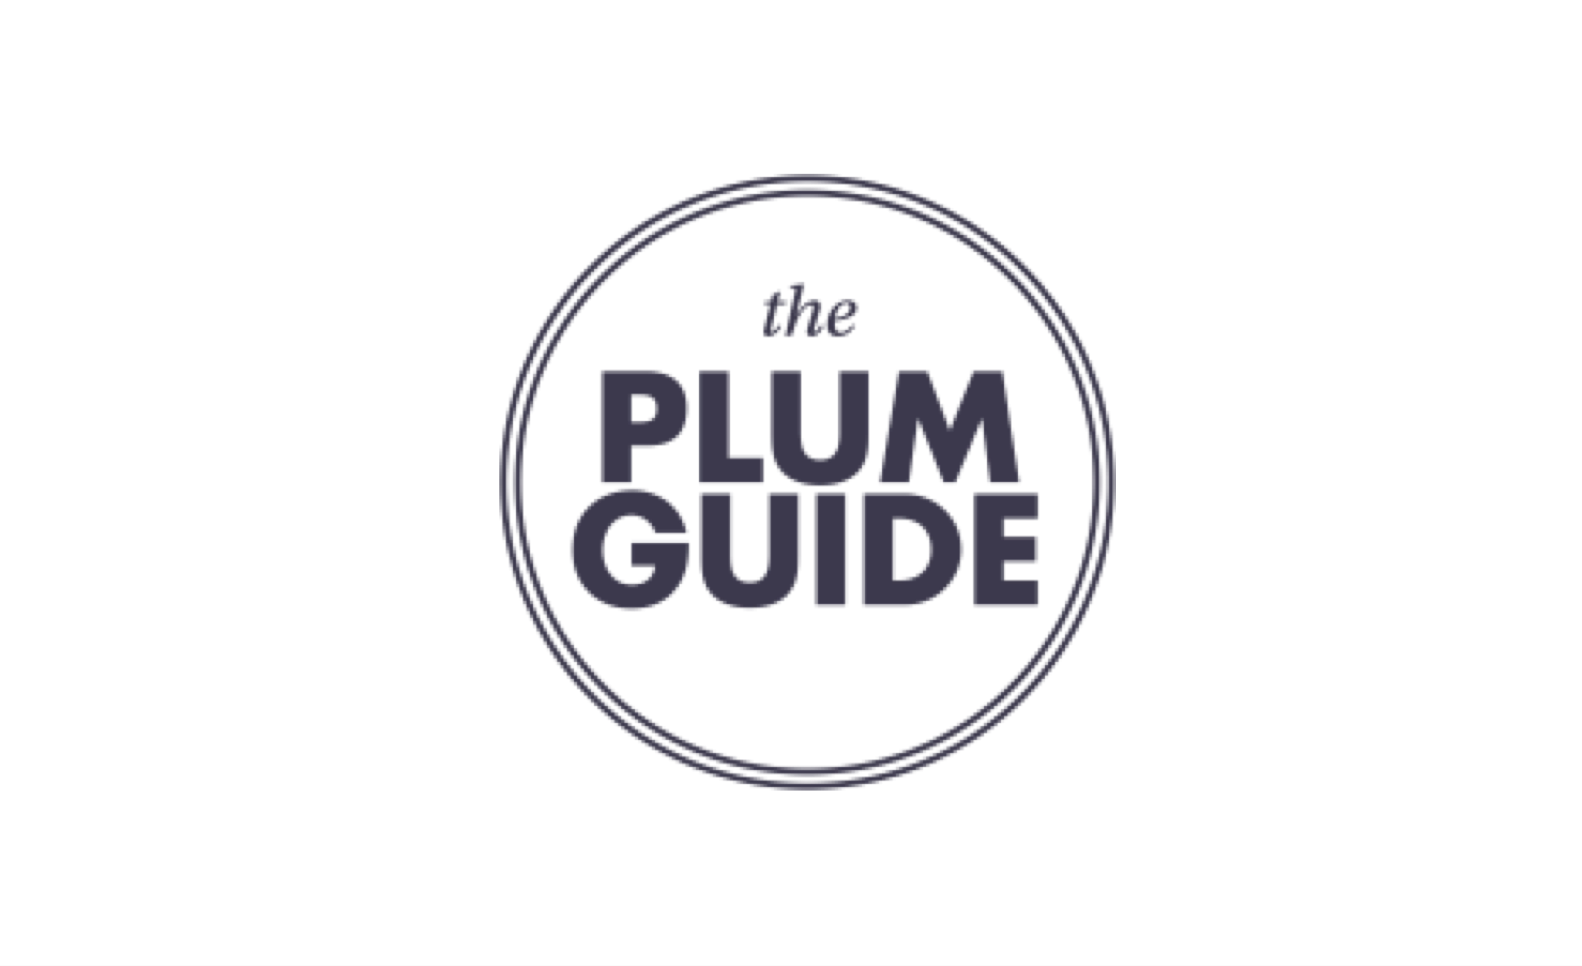 Plumguide on Happyguest.co.uk